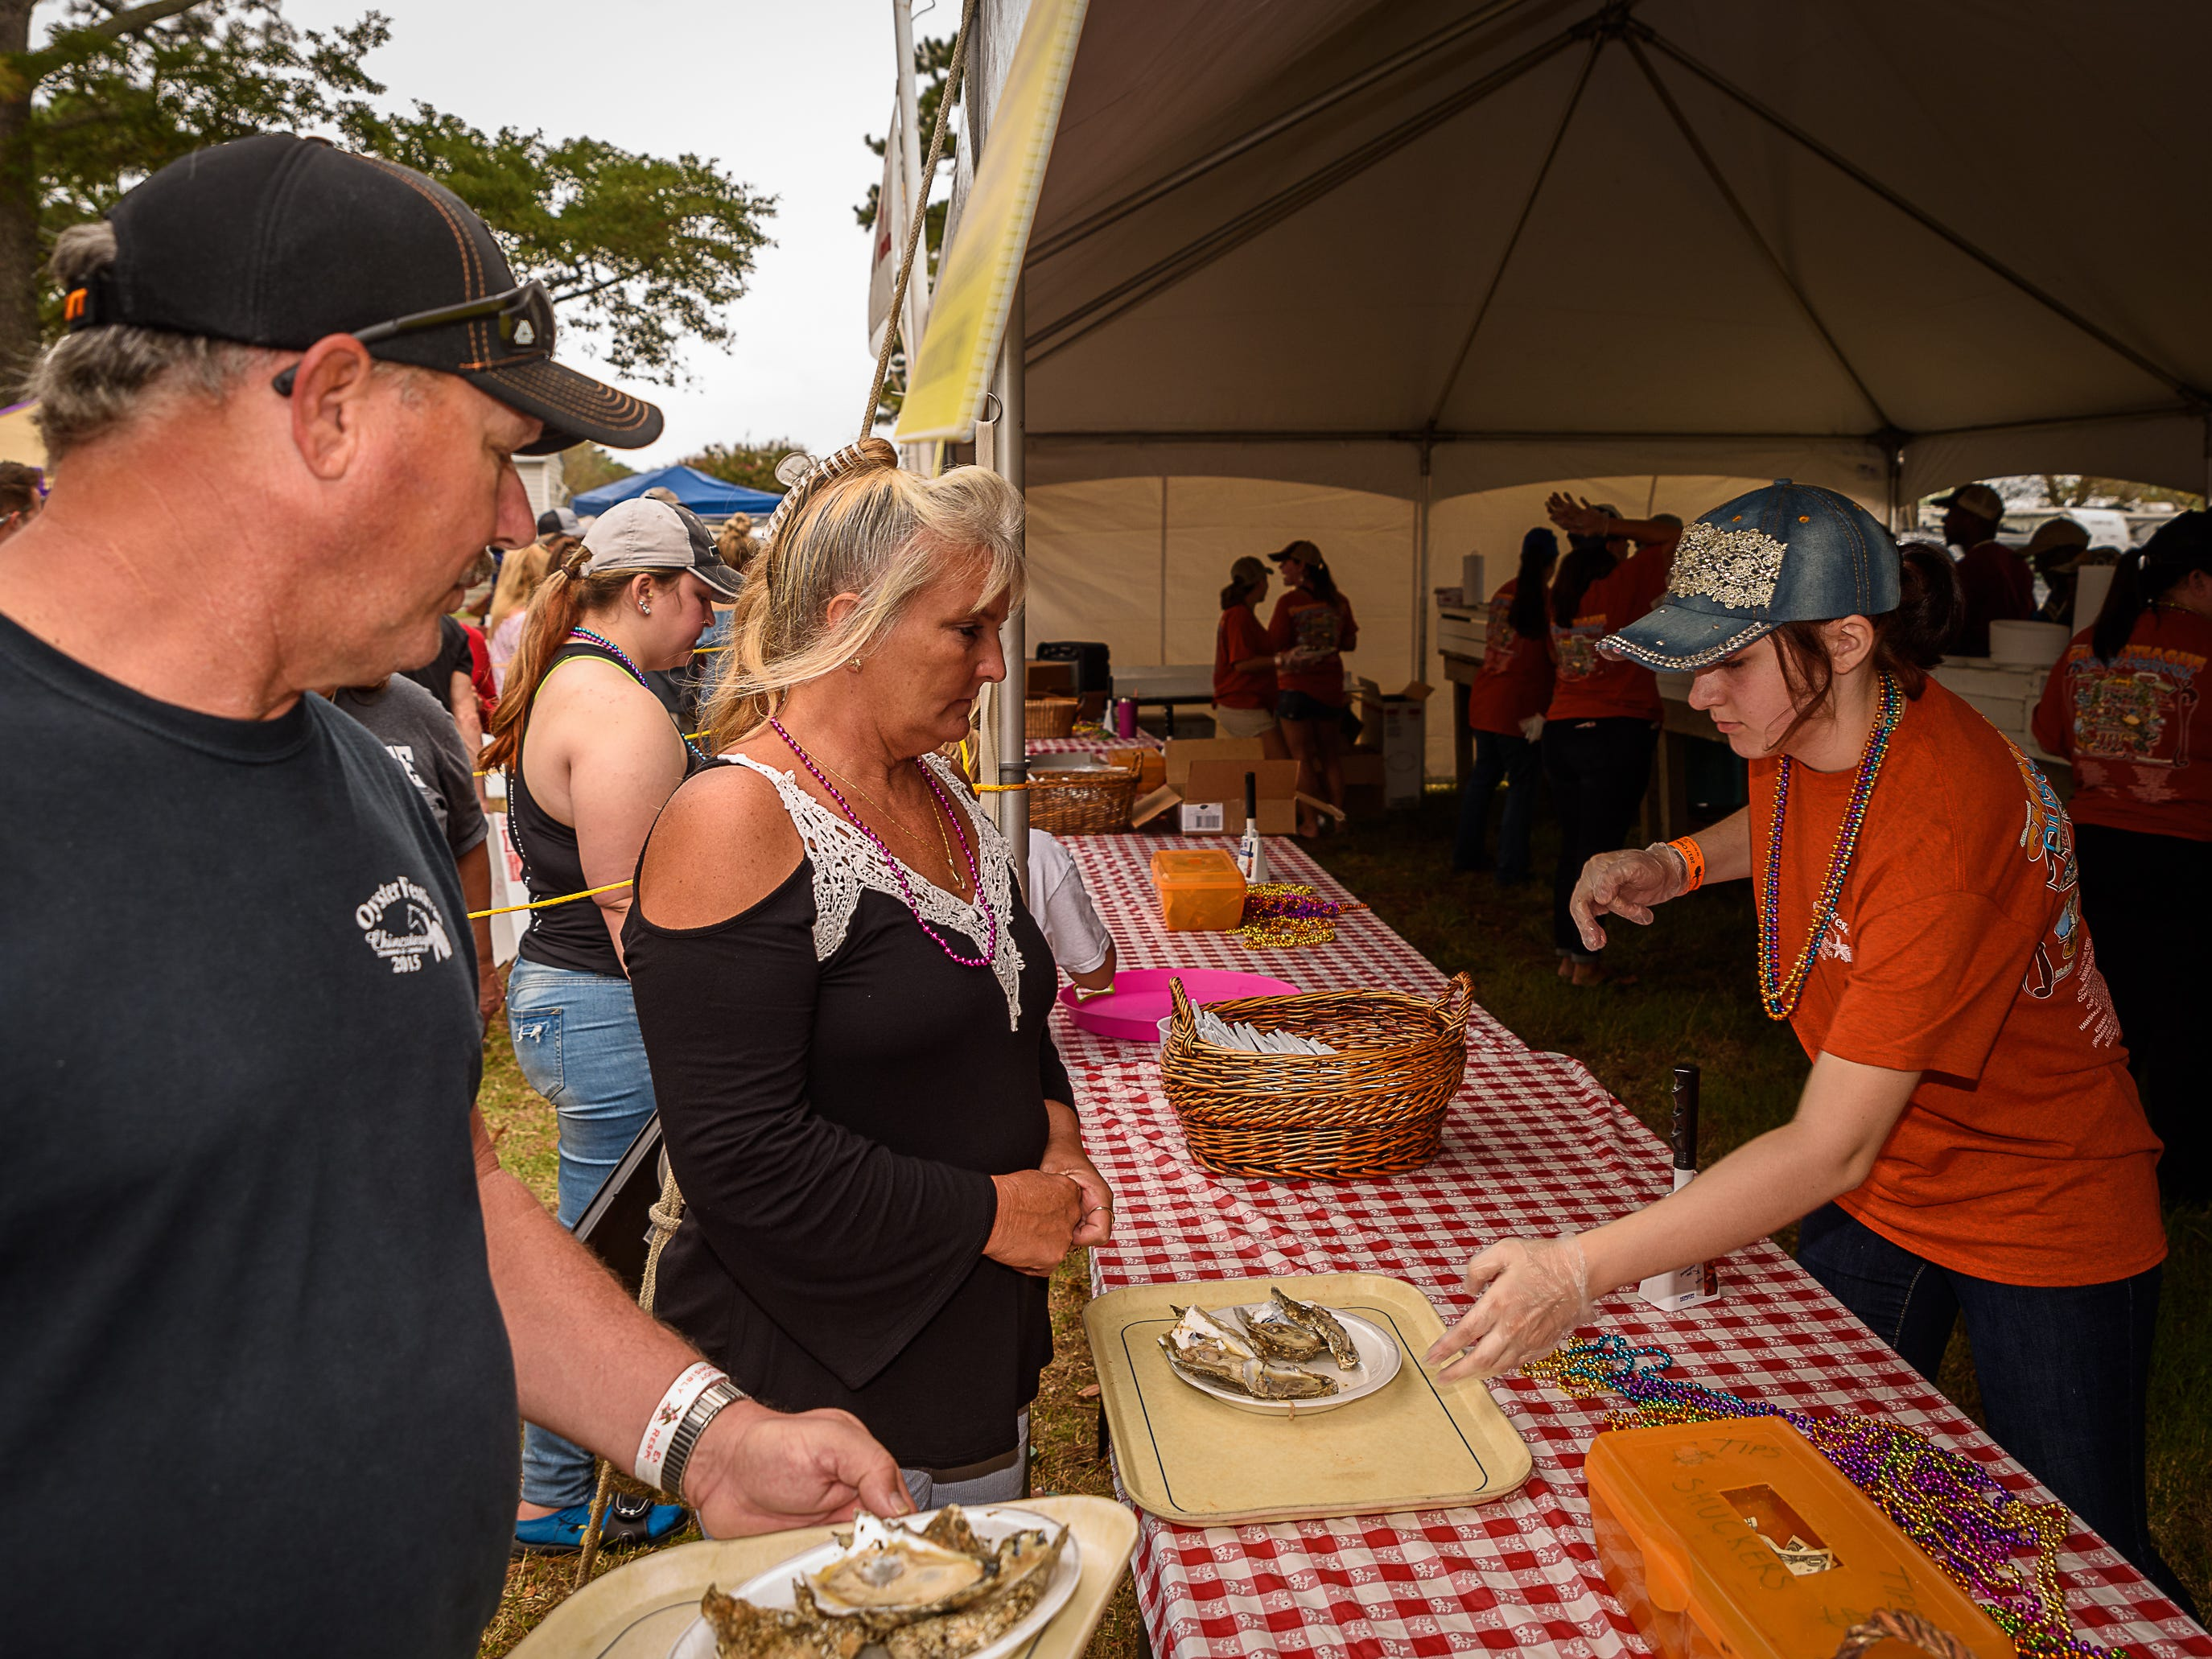 A volunteer hands out a plate of oysters at the Chincoteague Oyster Festival.